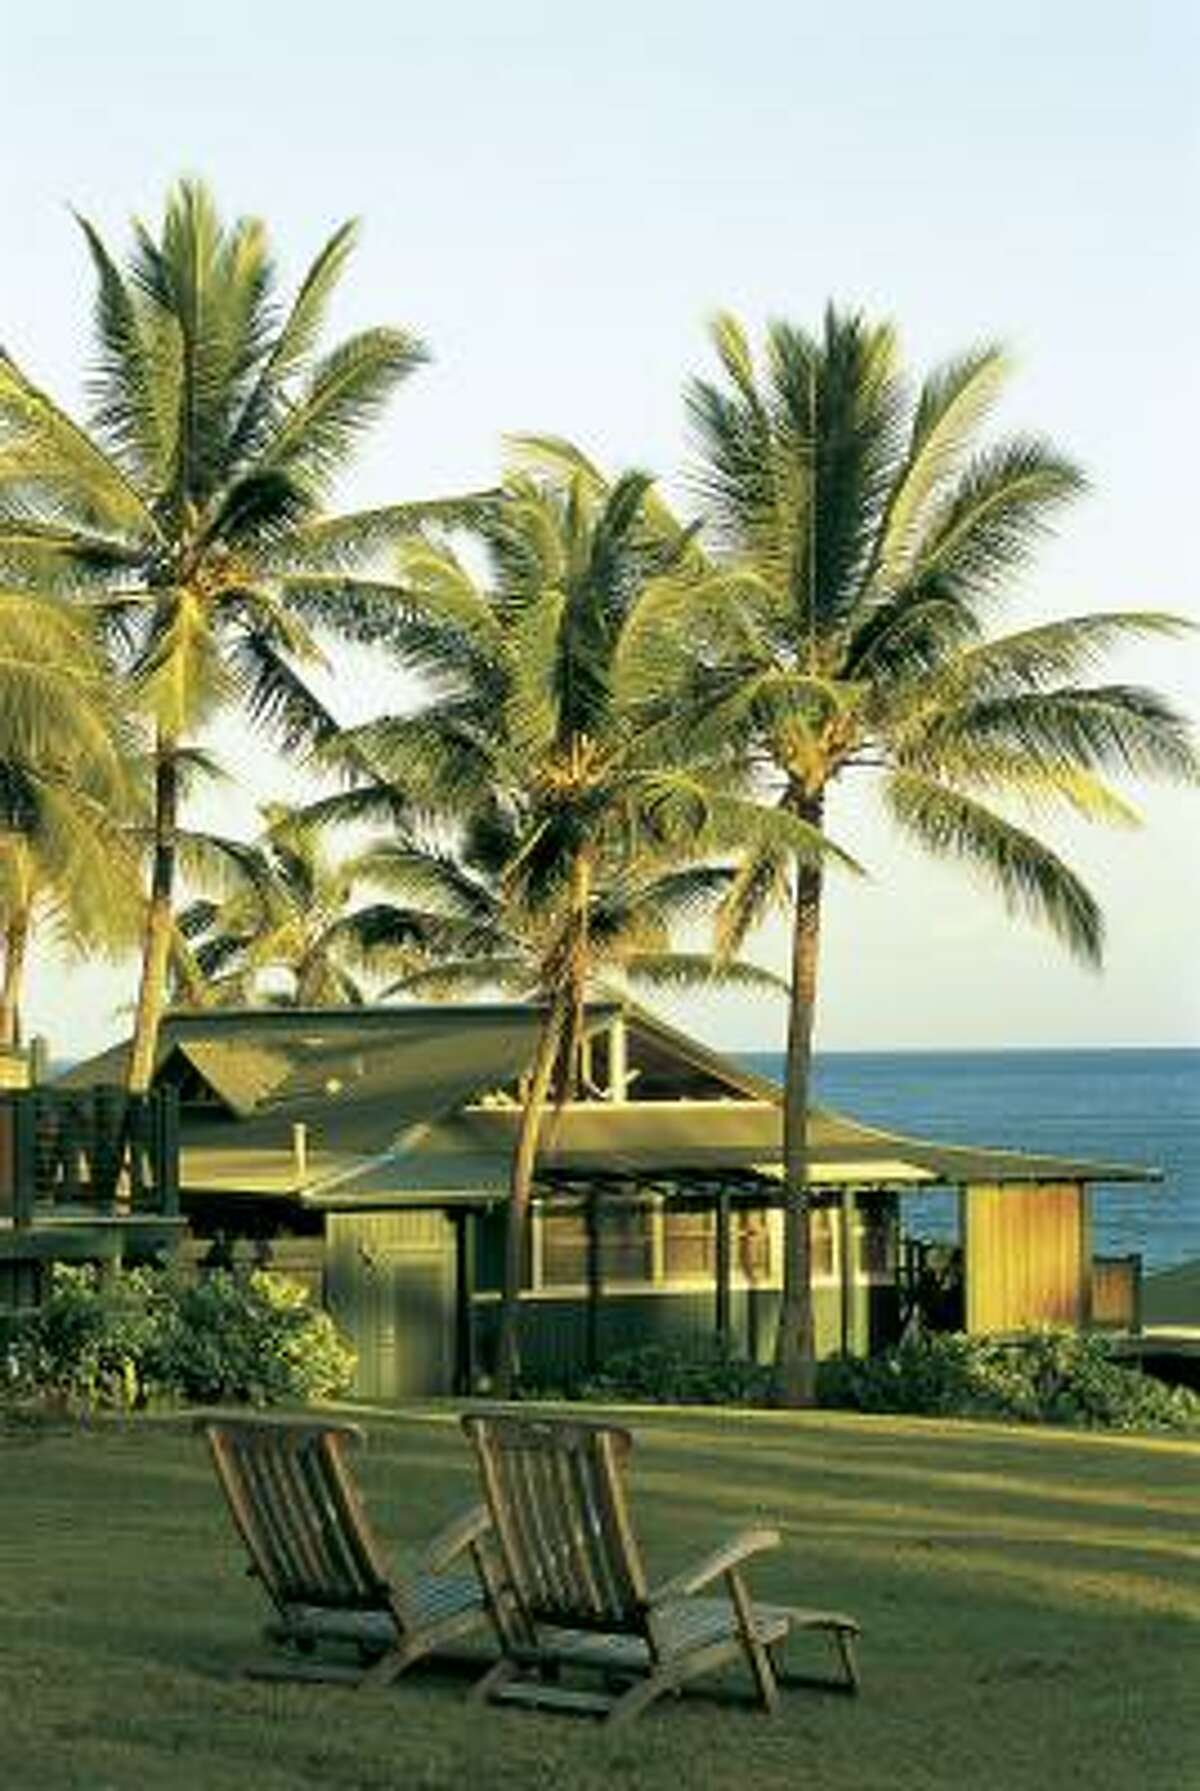 """The Sea Ranch Cottage at Hotel Hana-Maui is one of 66 cottages at the hotel. None of the cottages have TVs, clocks, radios or air conditioning, creating on """"old Hawaii"""" feel."""